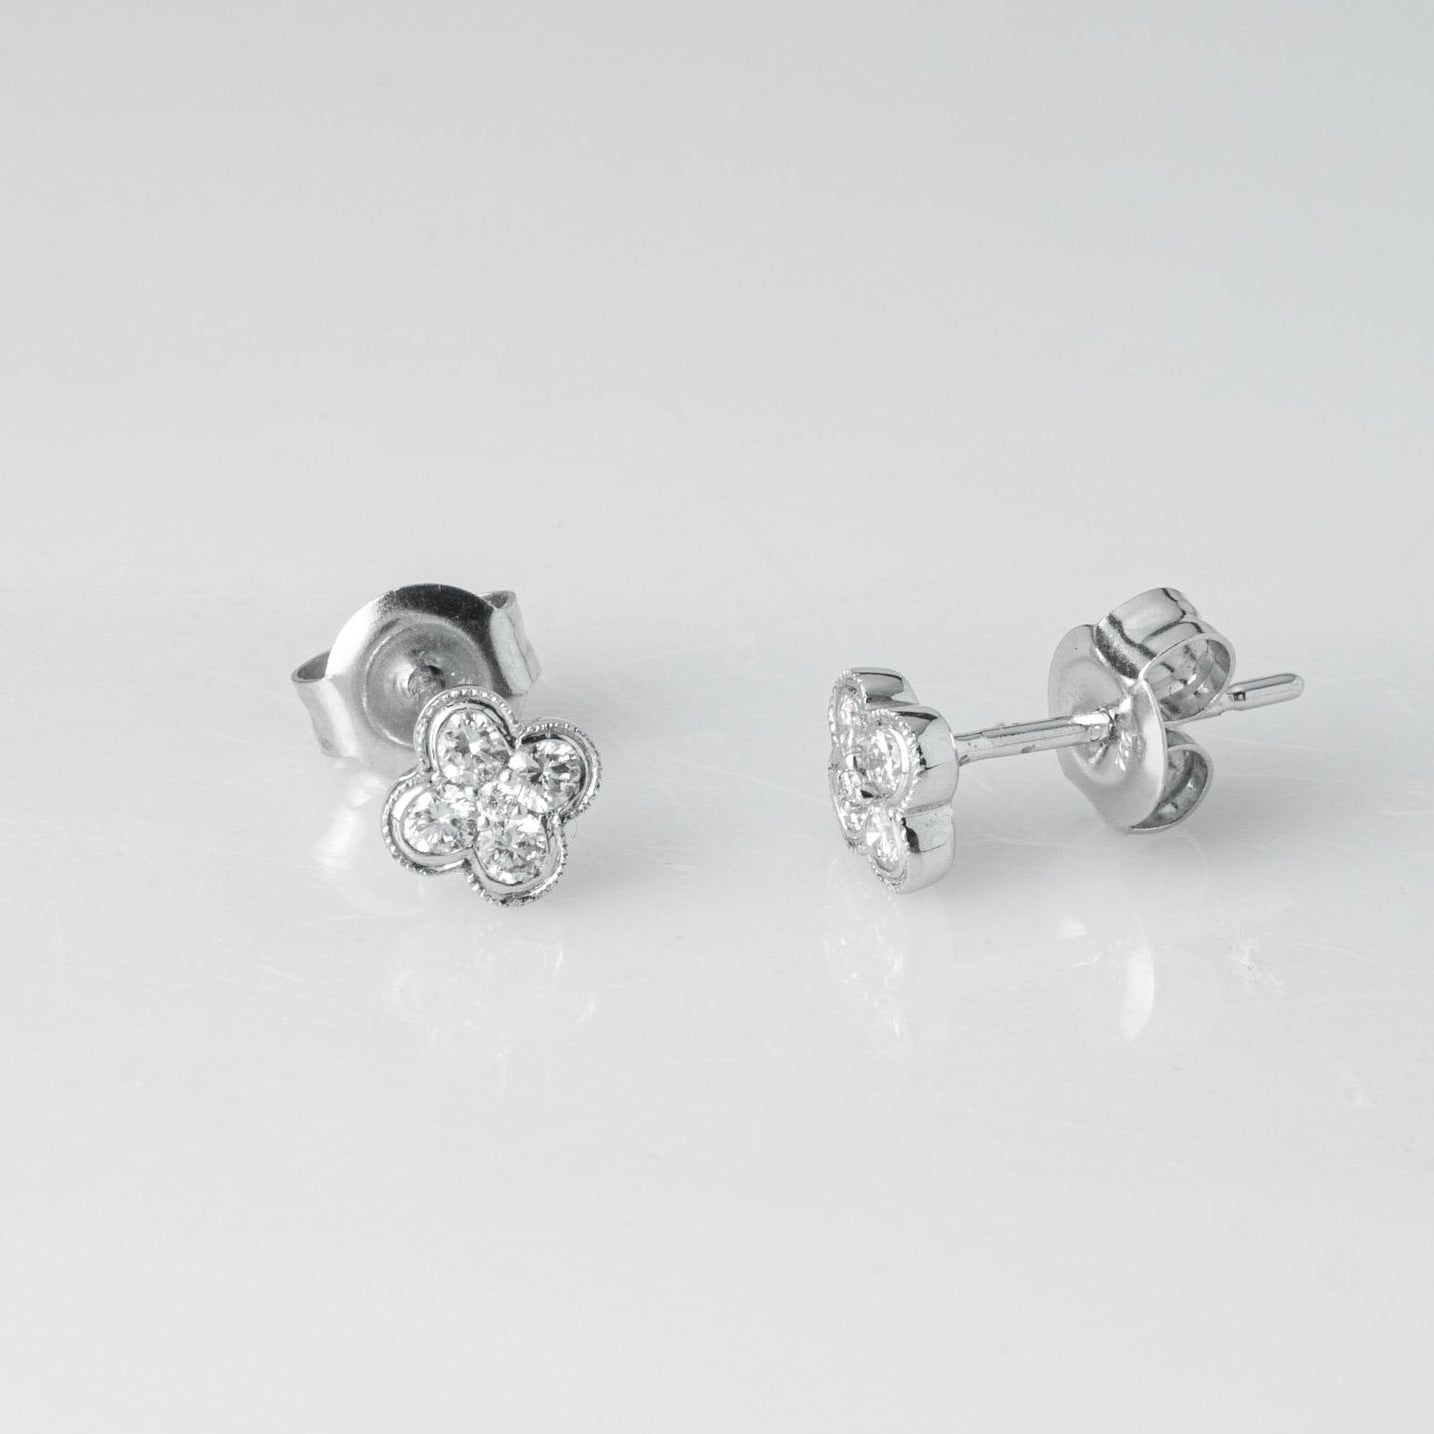 18ct White Gold 0.28ct Cluster Cut Diamond Stud Earrings (A-AE38072)